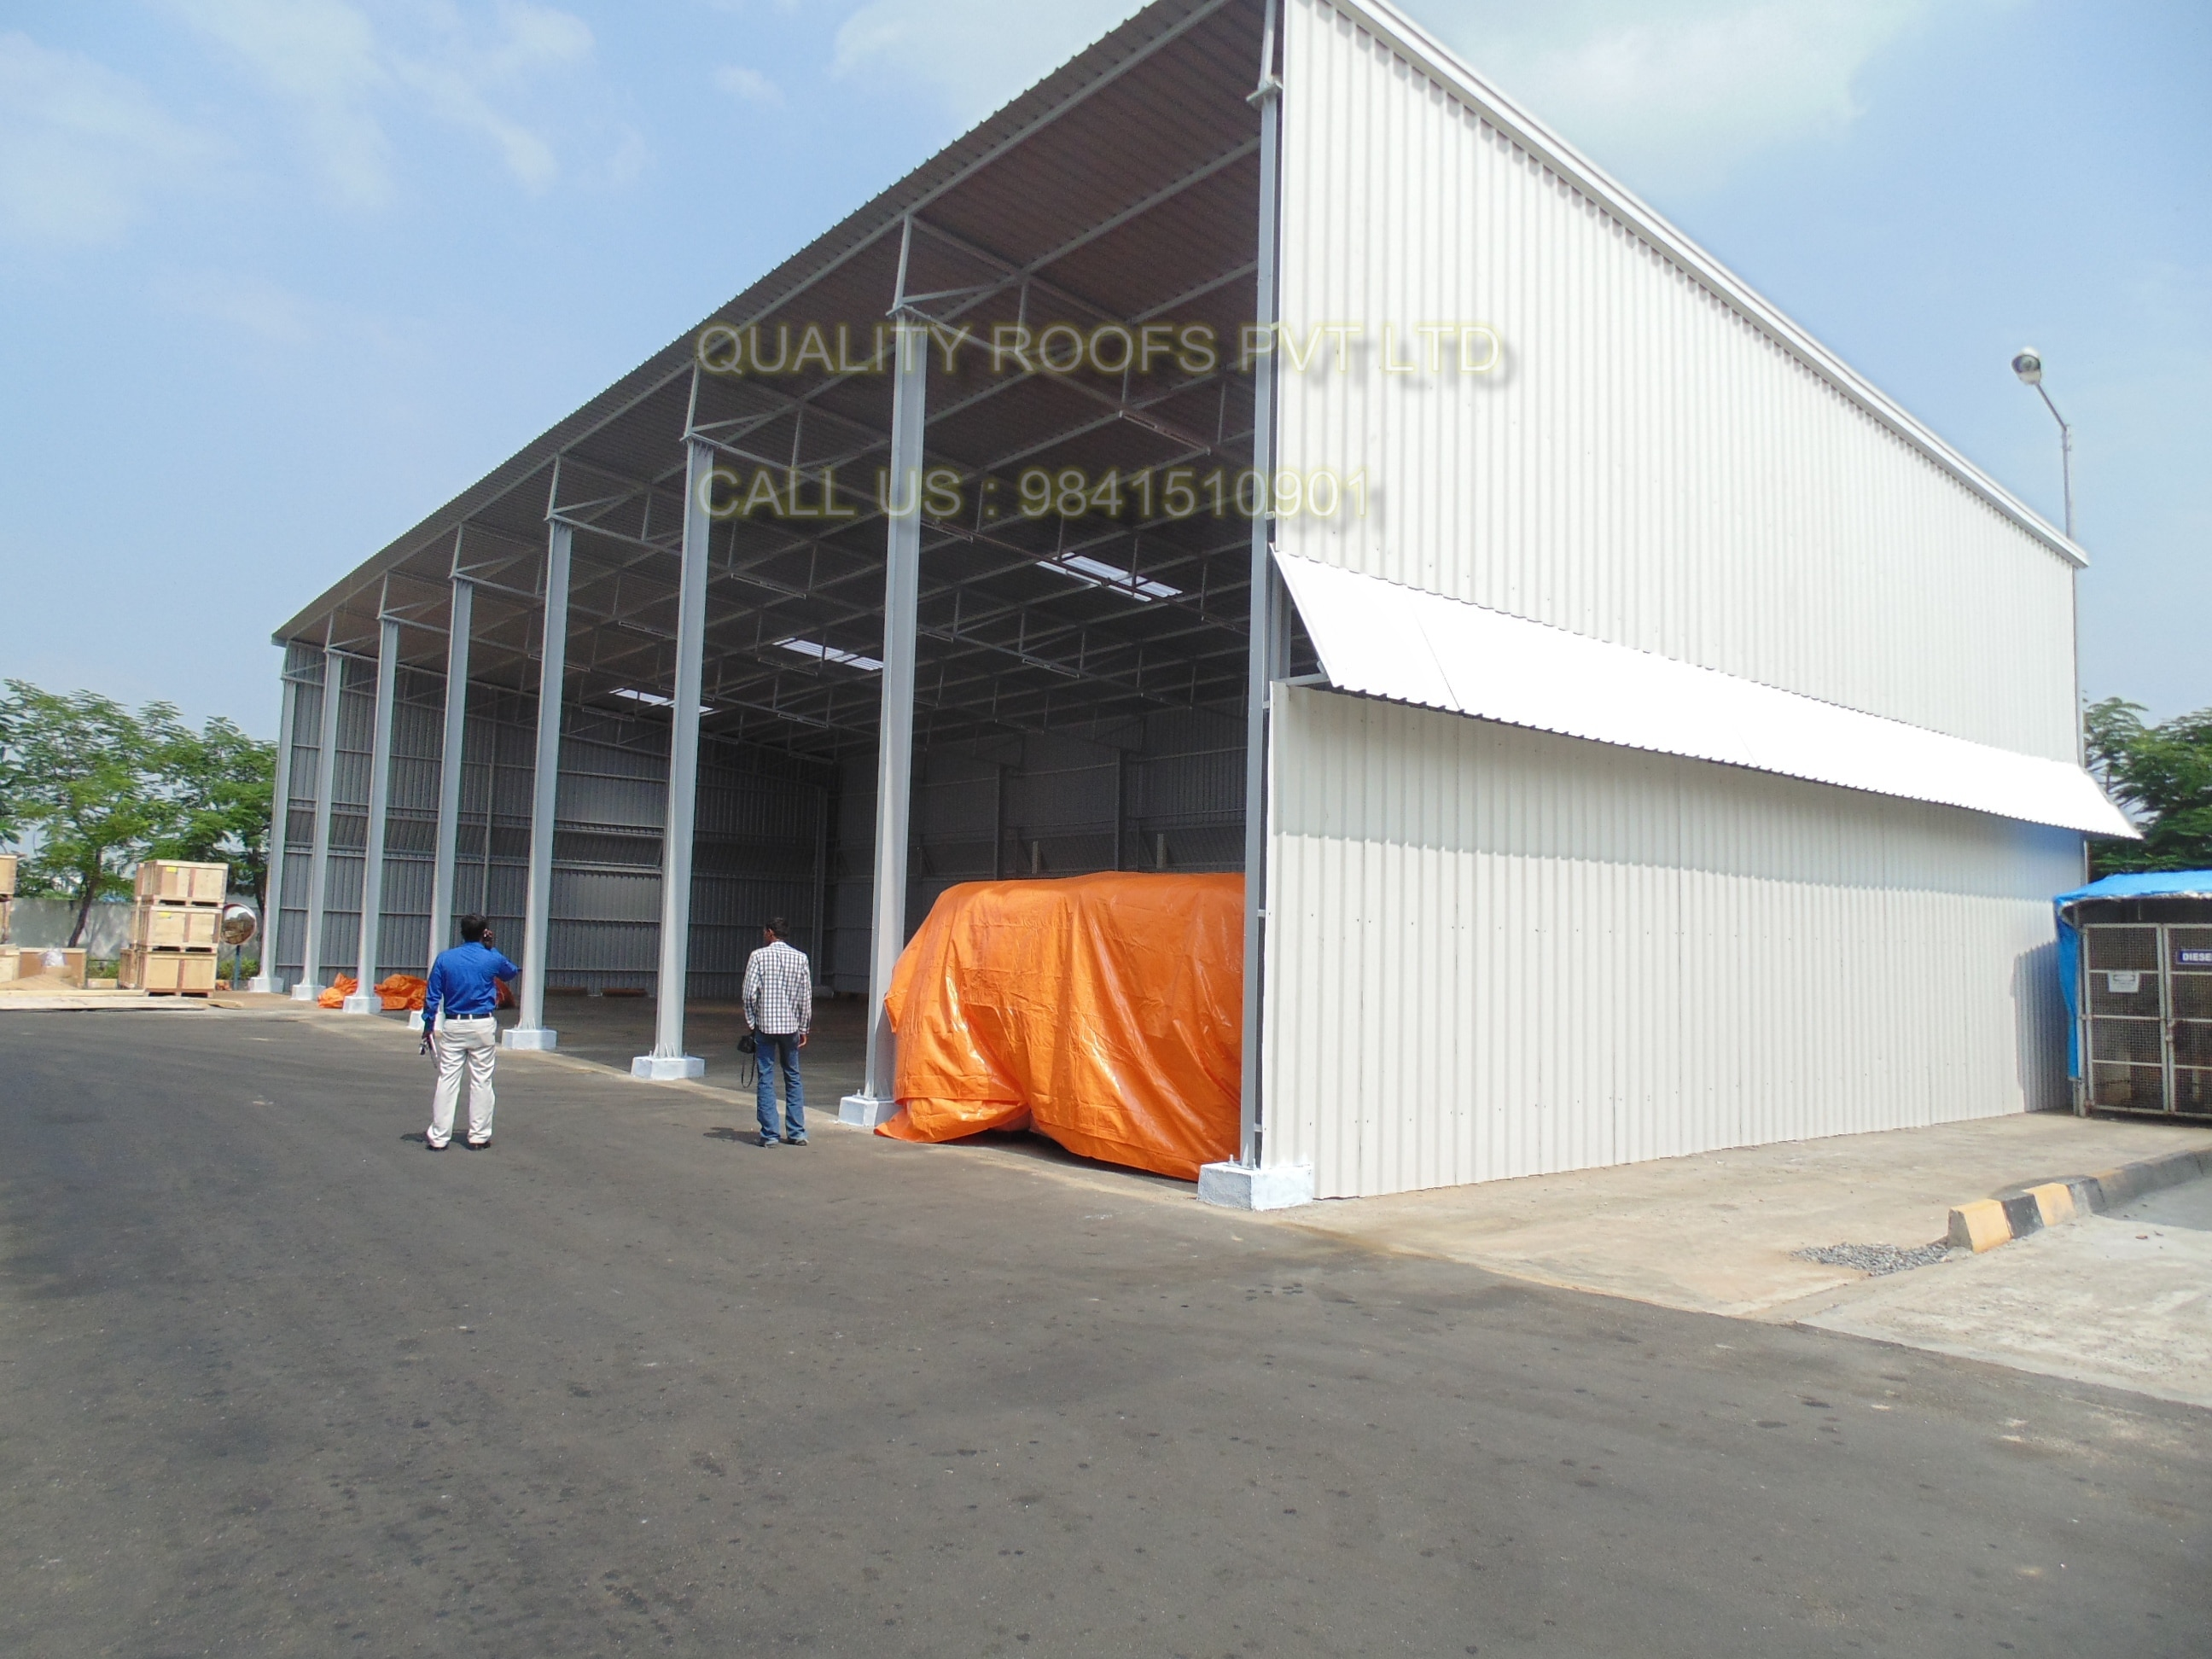 Industrial Shed Fabricators    We are the leading Industrial Shed Fabricators. Our product is highly reliable and adheres to the international quality standards. The entire product is fabricated under the supervision of skilled professionals, who possess enormous experience in their respective domains. We have gained huge applauds by our clients for our offered products. We are the best Factory Roofing Shed Contractors.